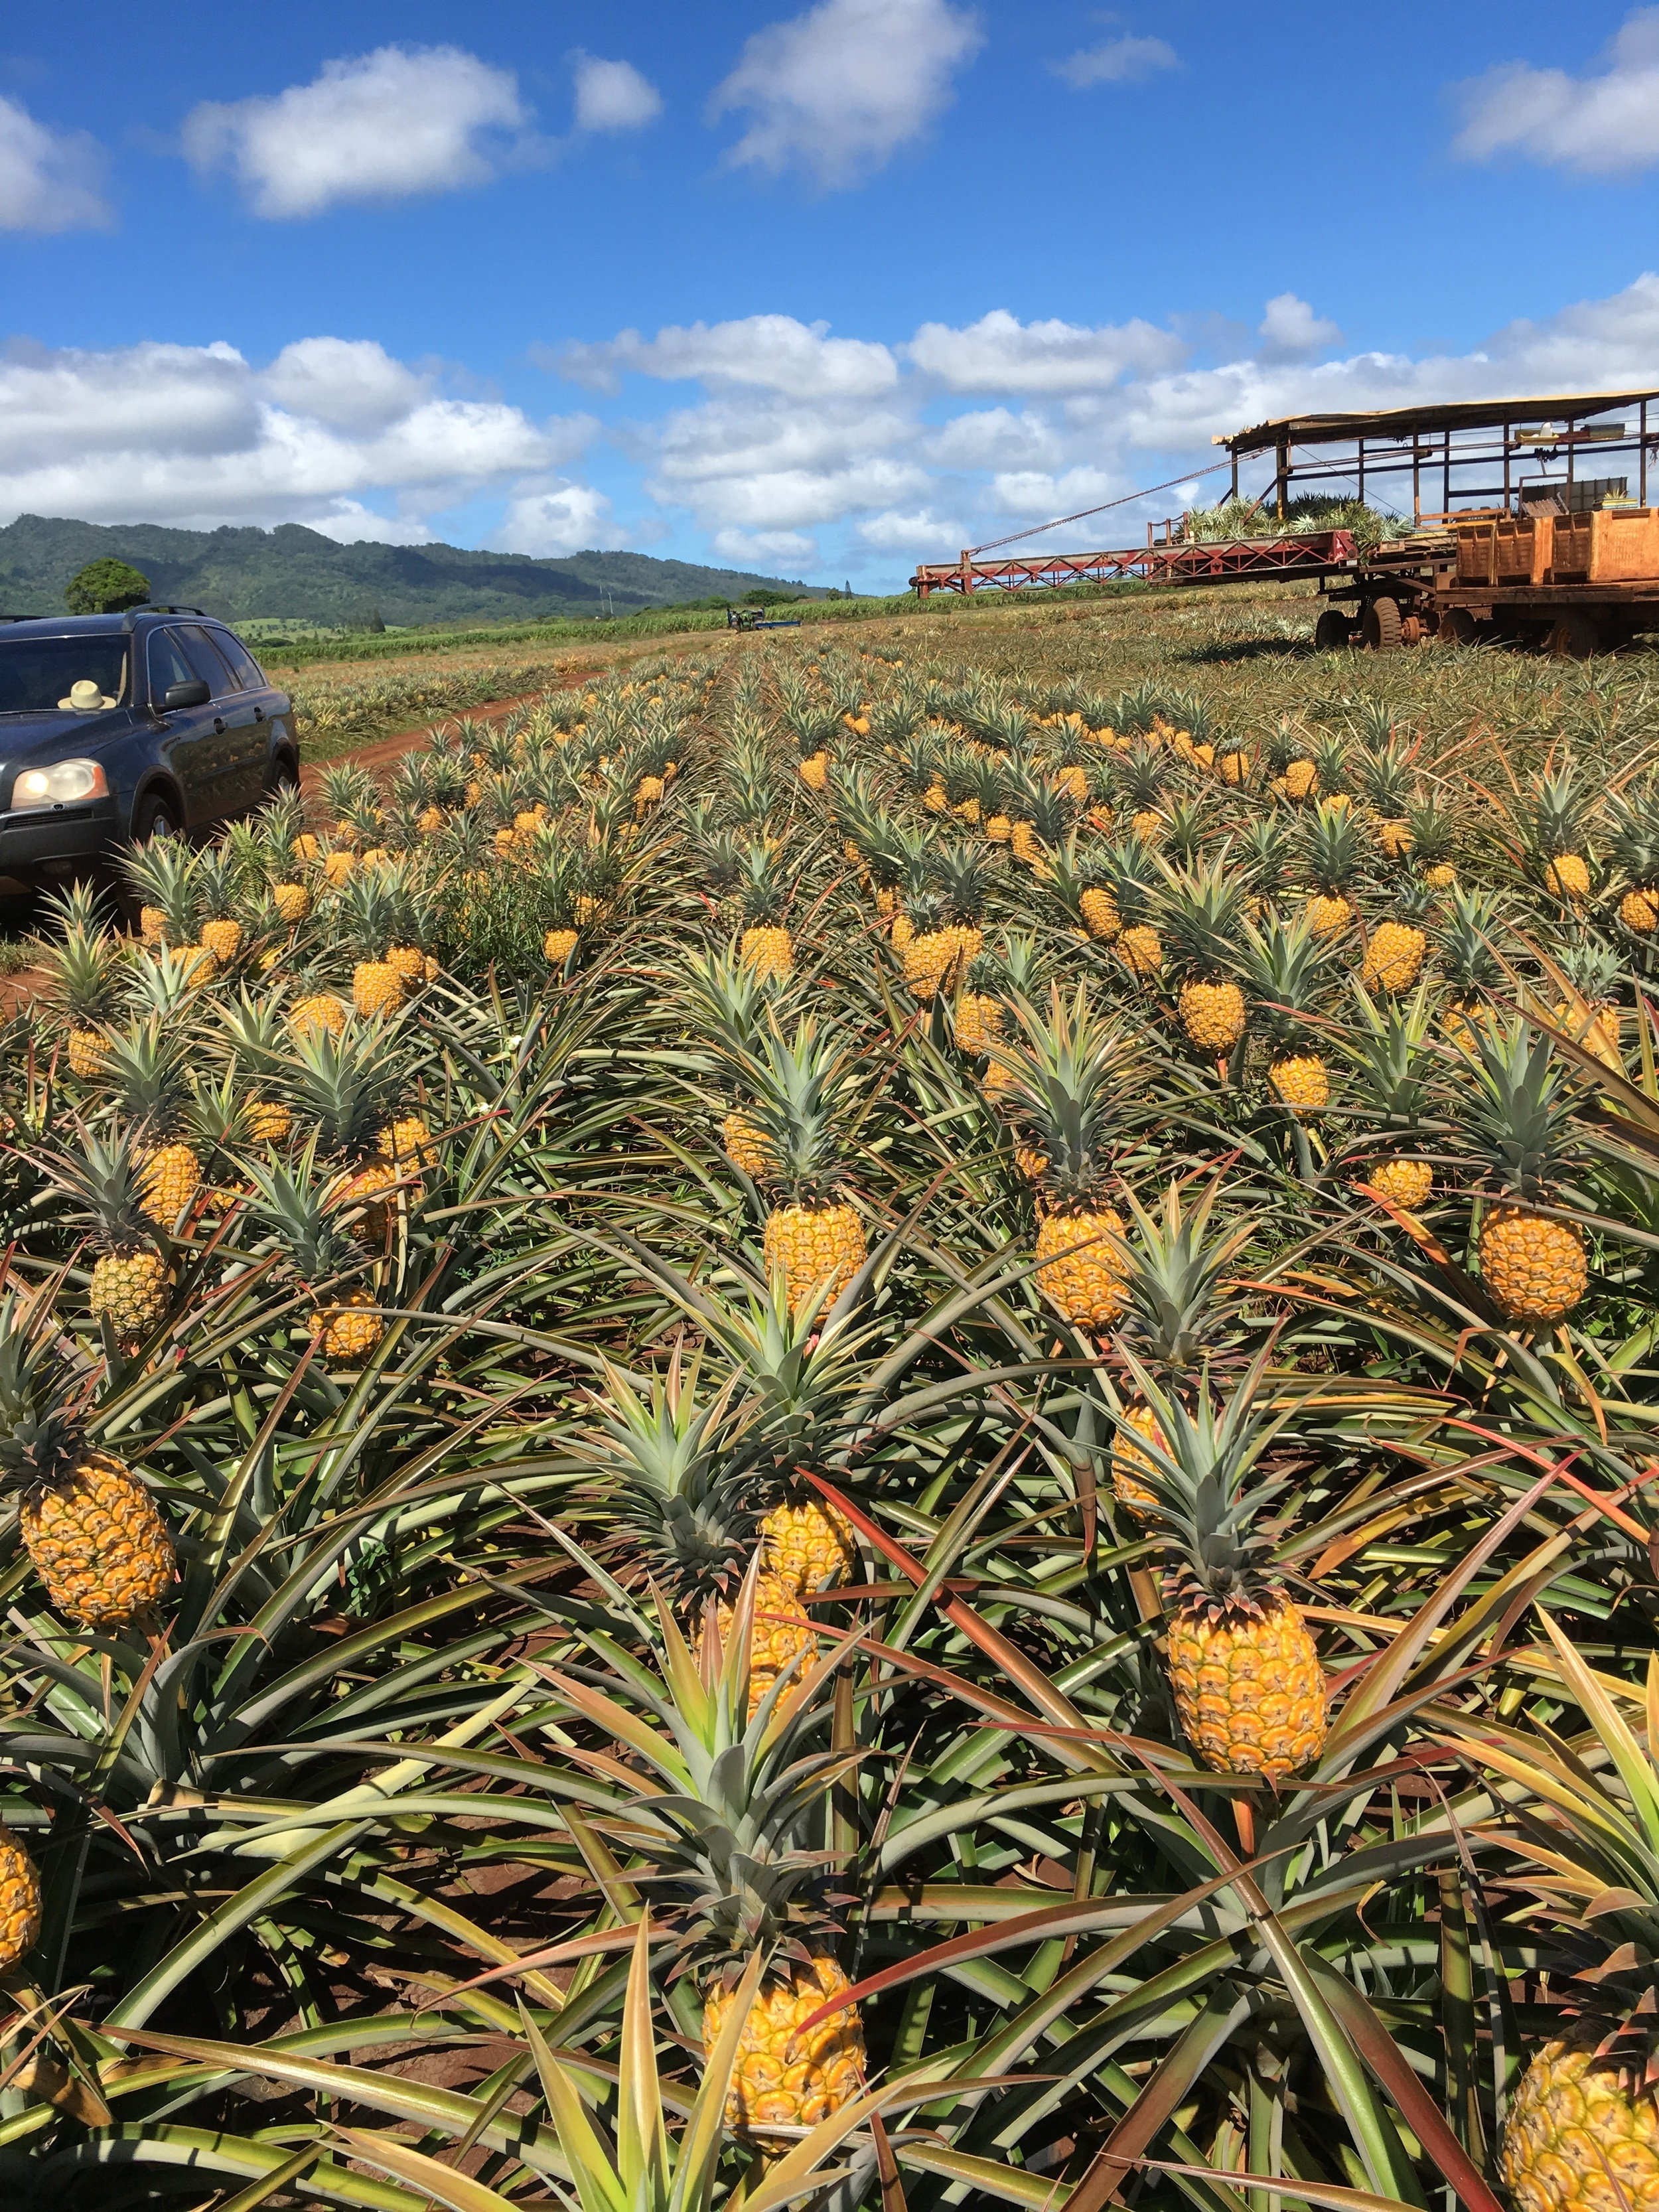 A field of Hawaiian Crown pineapples ready to be harvested. - Photos (top and bottom) by Craig Bowden